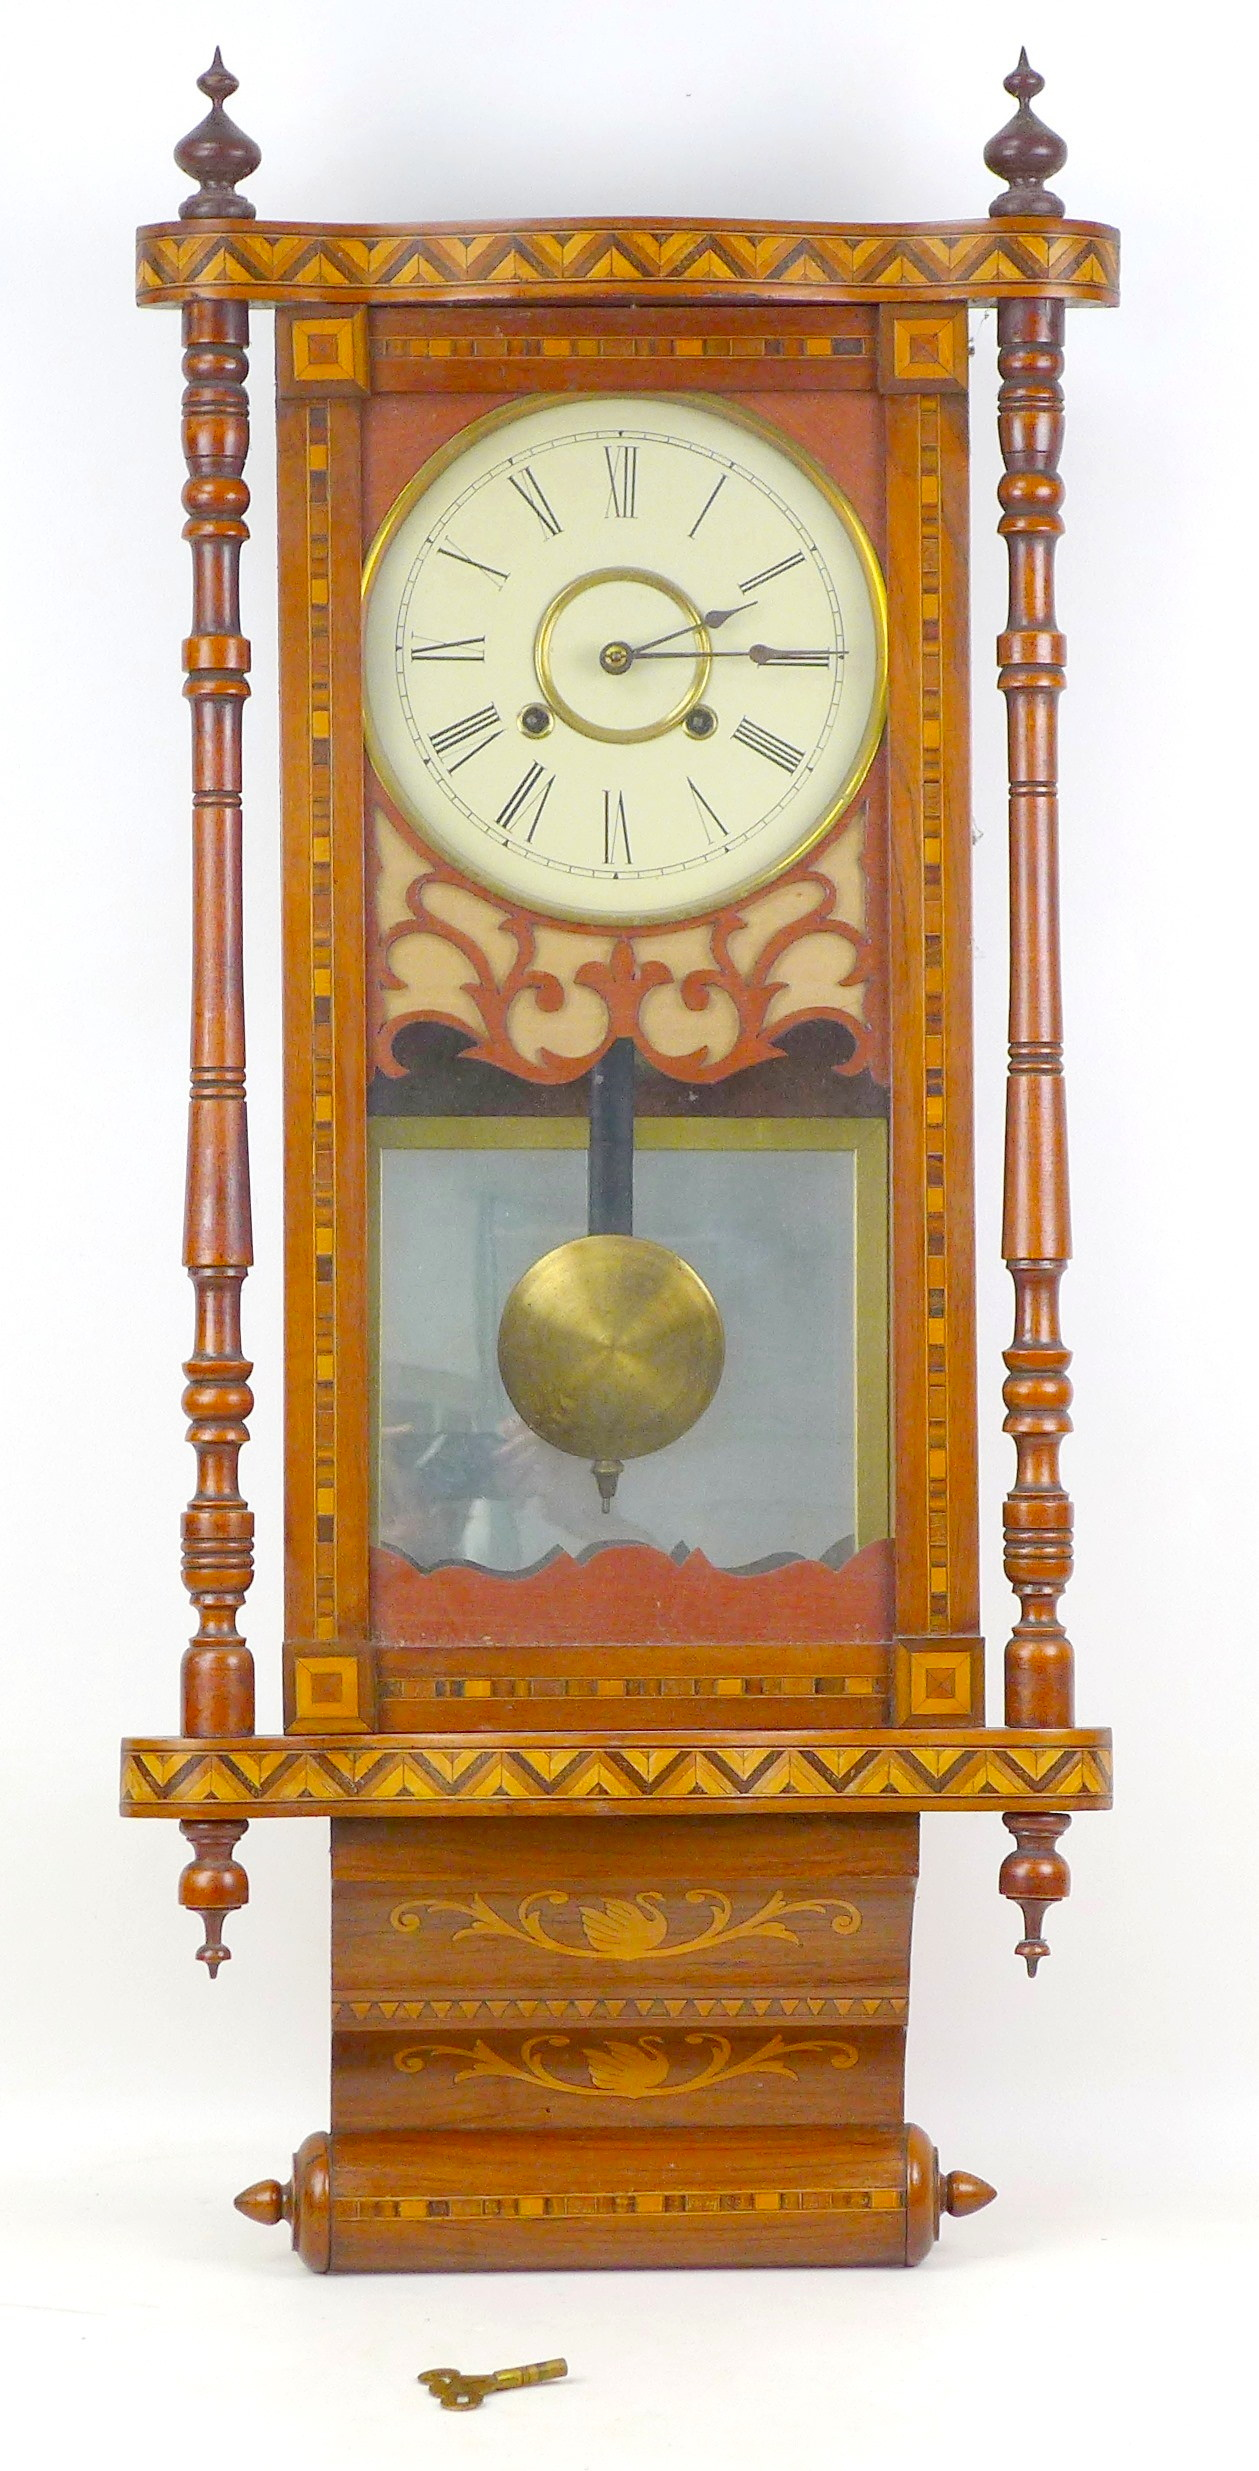 An early 20th century Vienna regulator wall clock with Tunbridge ware inlaid mahogany case, a - Image 2 of 5